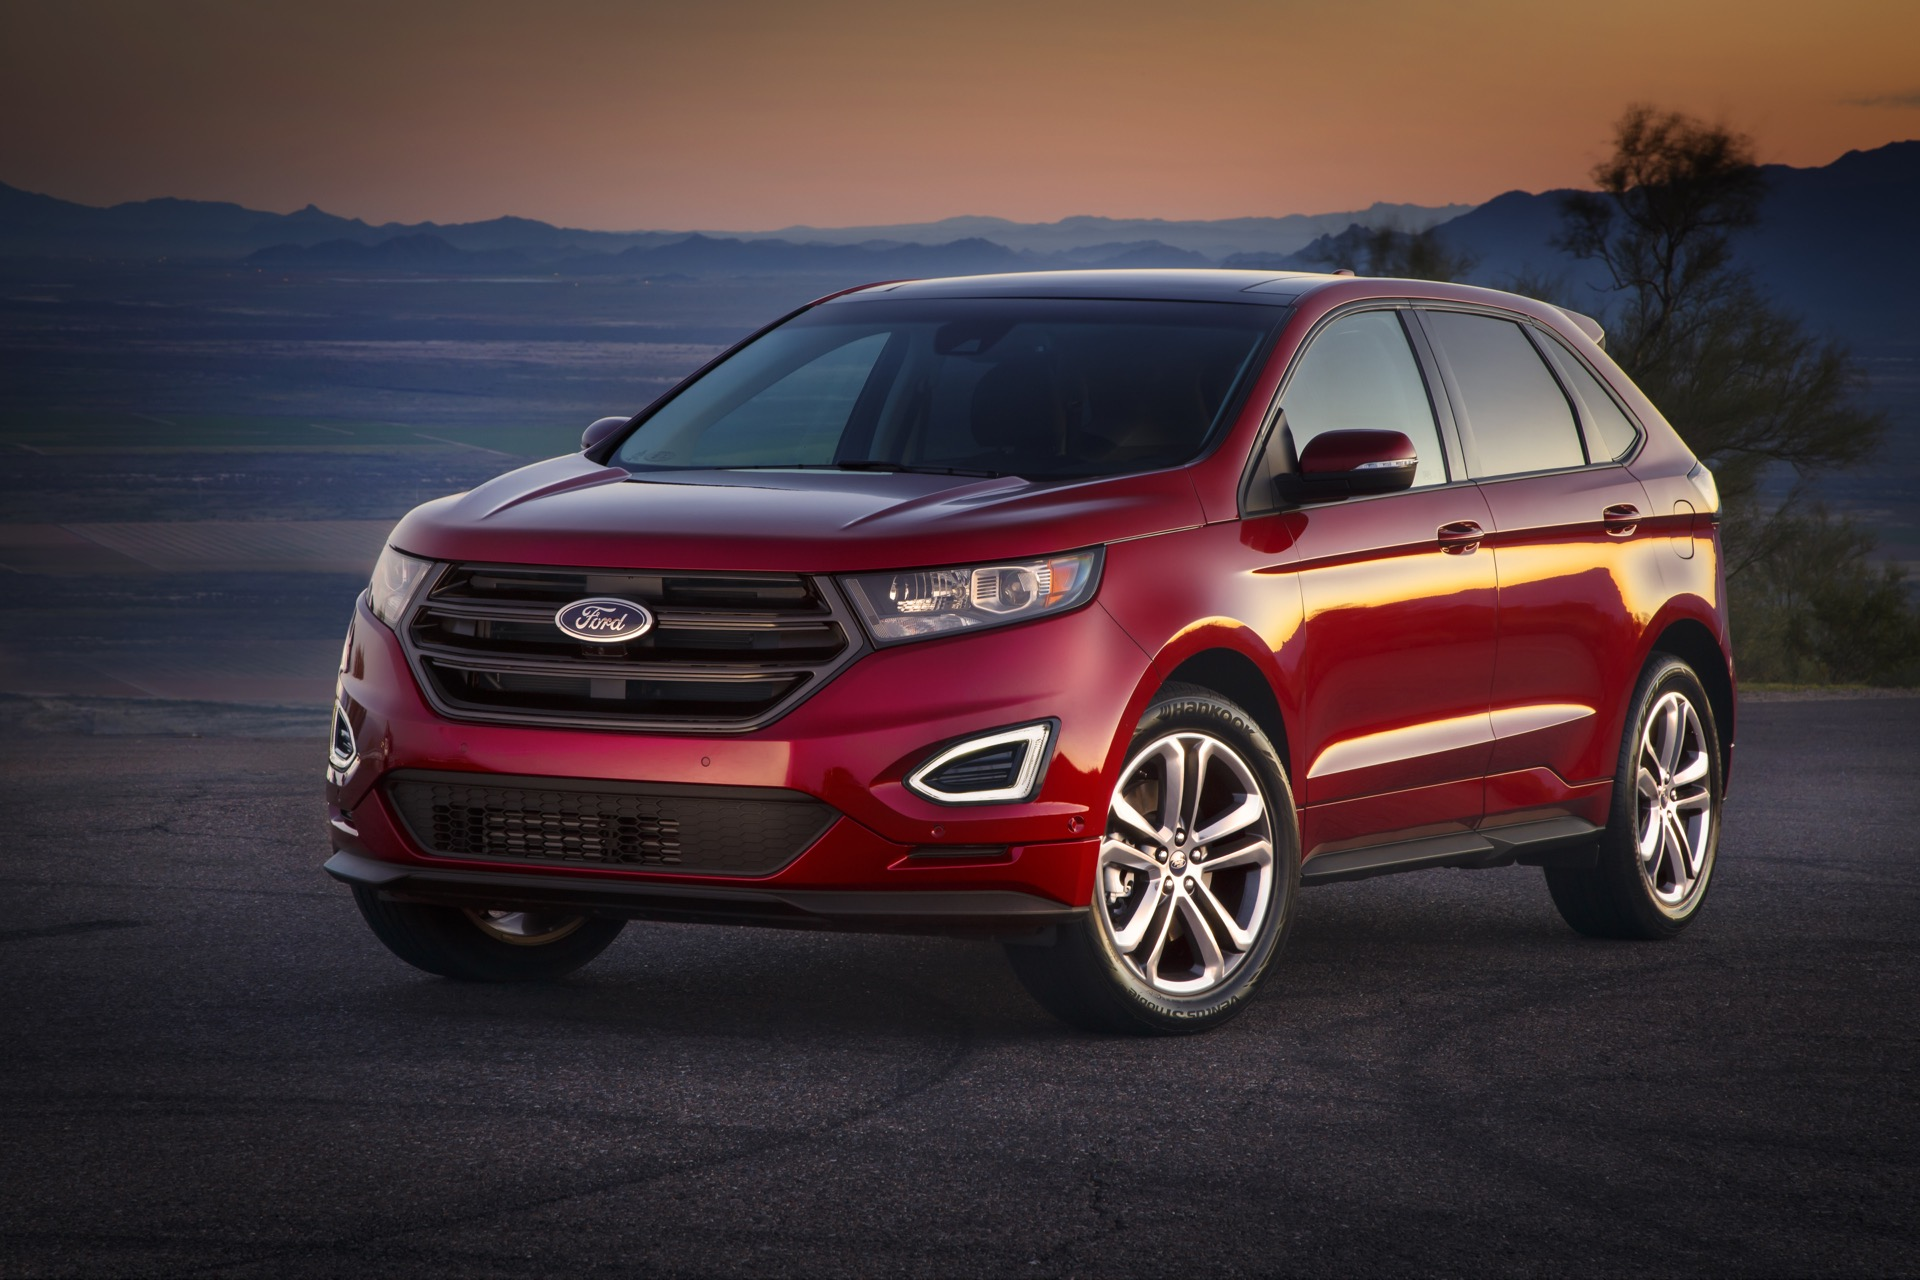 2016 ford edge styling review the car connection. Black Bedroom Furniture Sets. Home Design Ideas